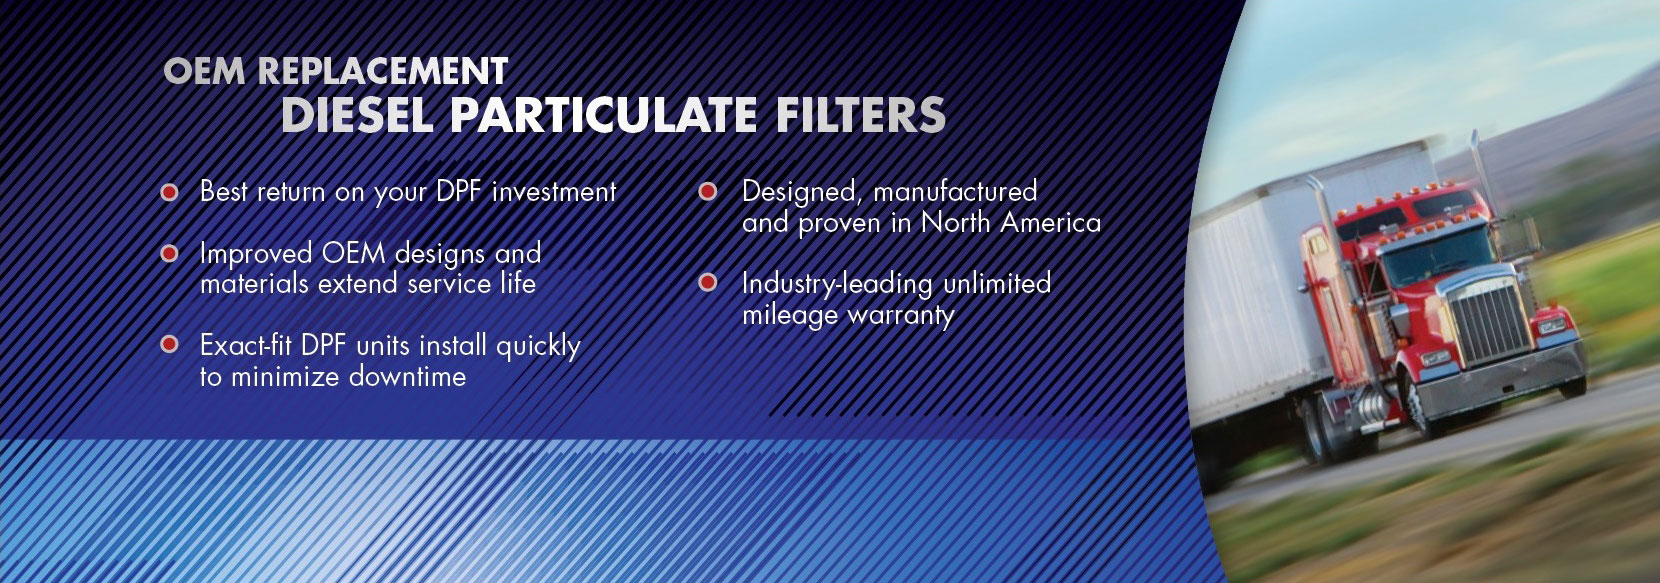 image of ad stating why DuraFit DPF are a great investment